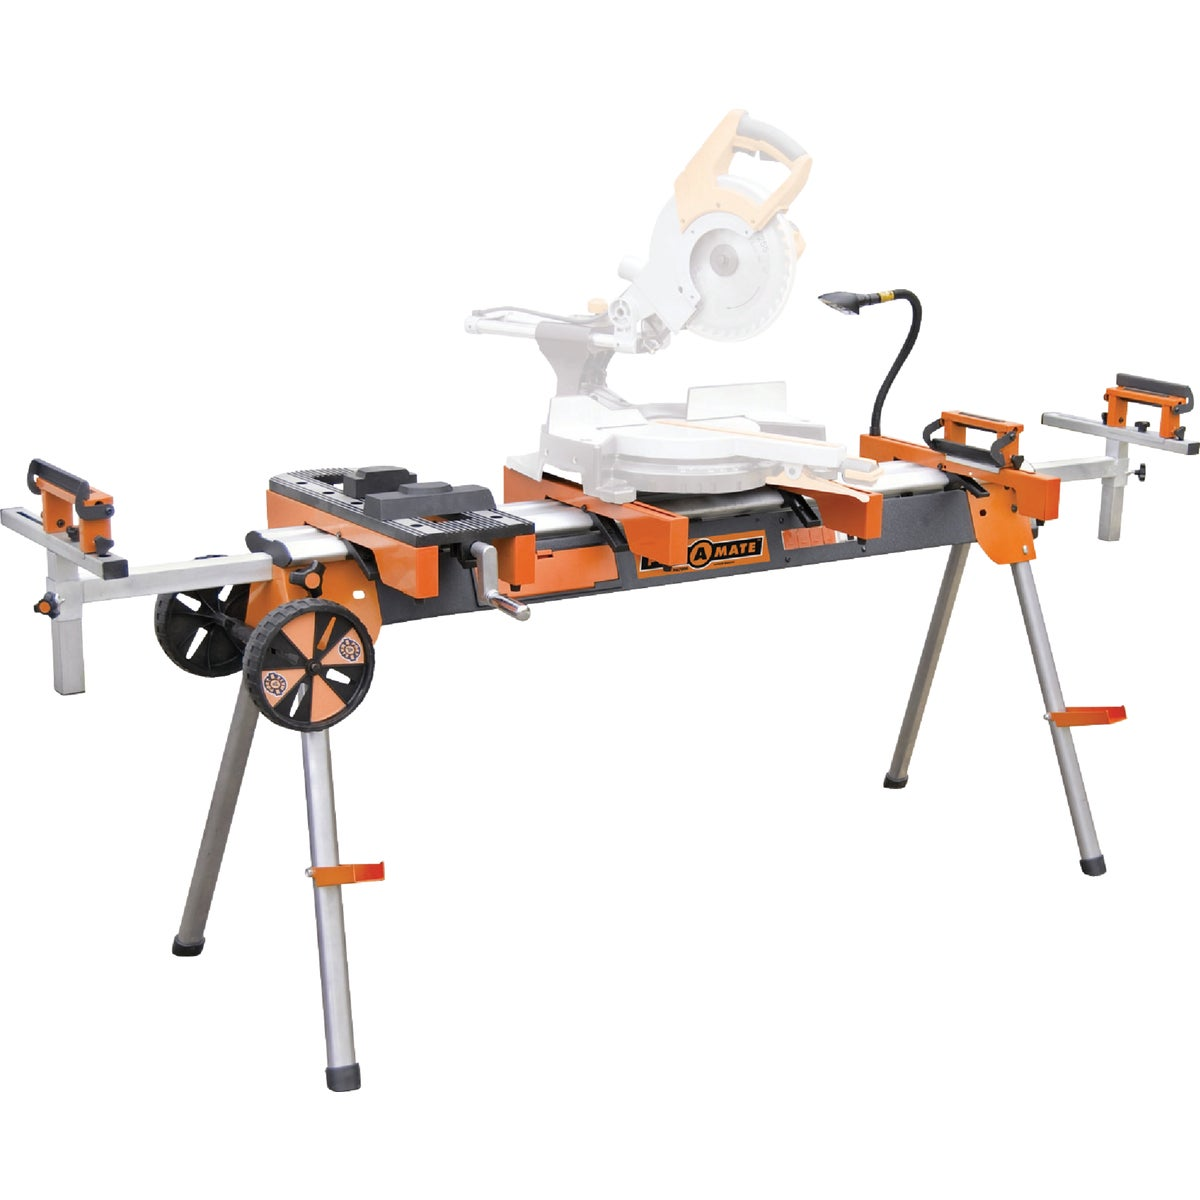 MITER SAW WORKCENTER - PM7000 by Affinity Tool Works